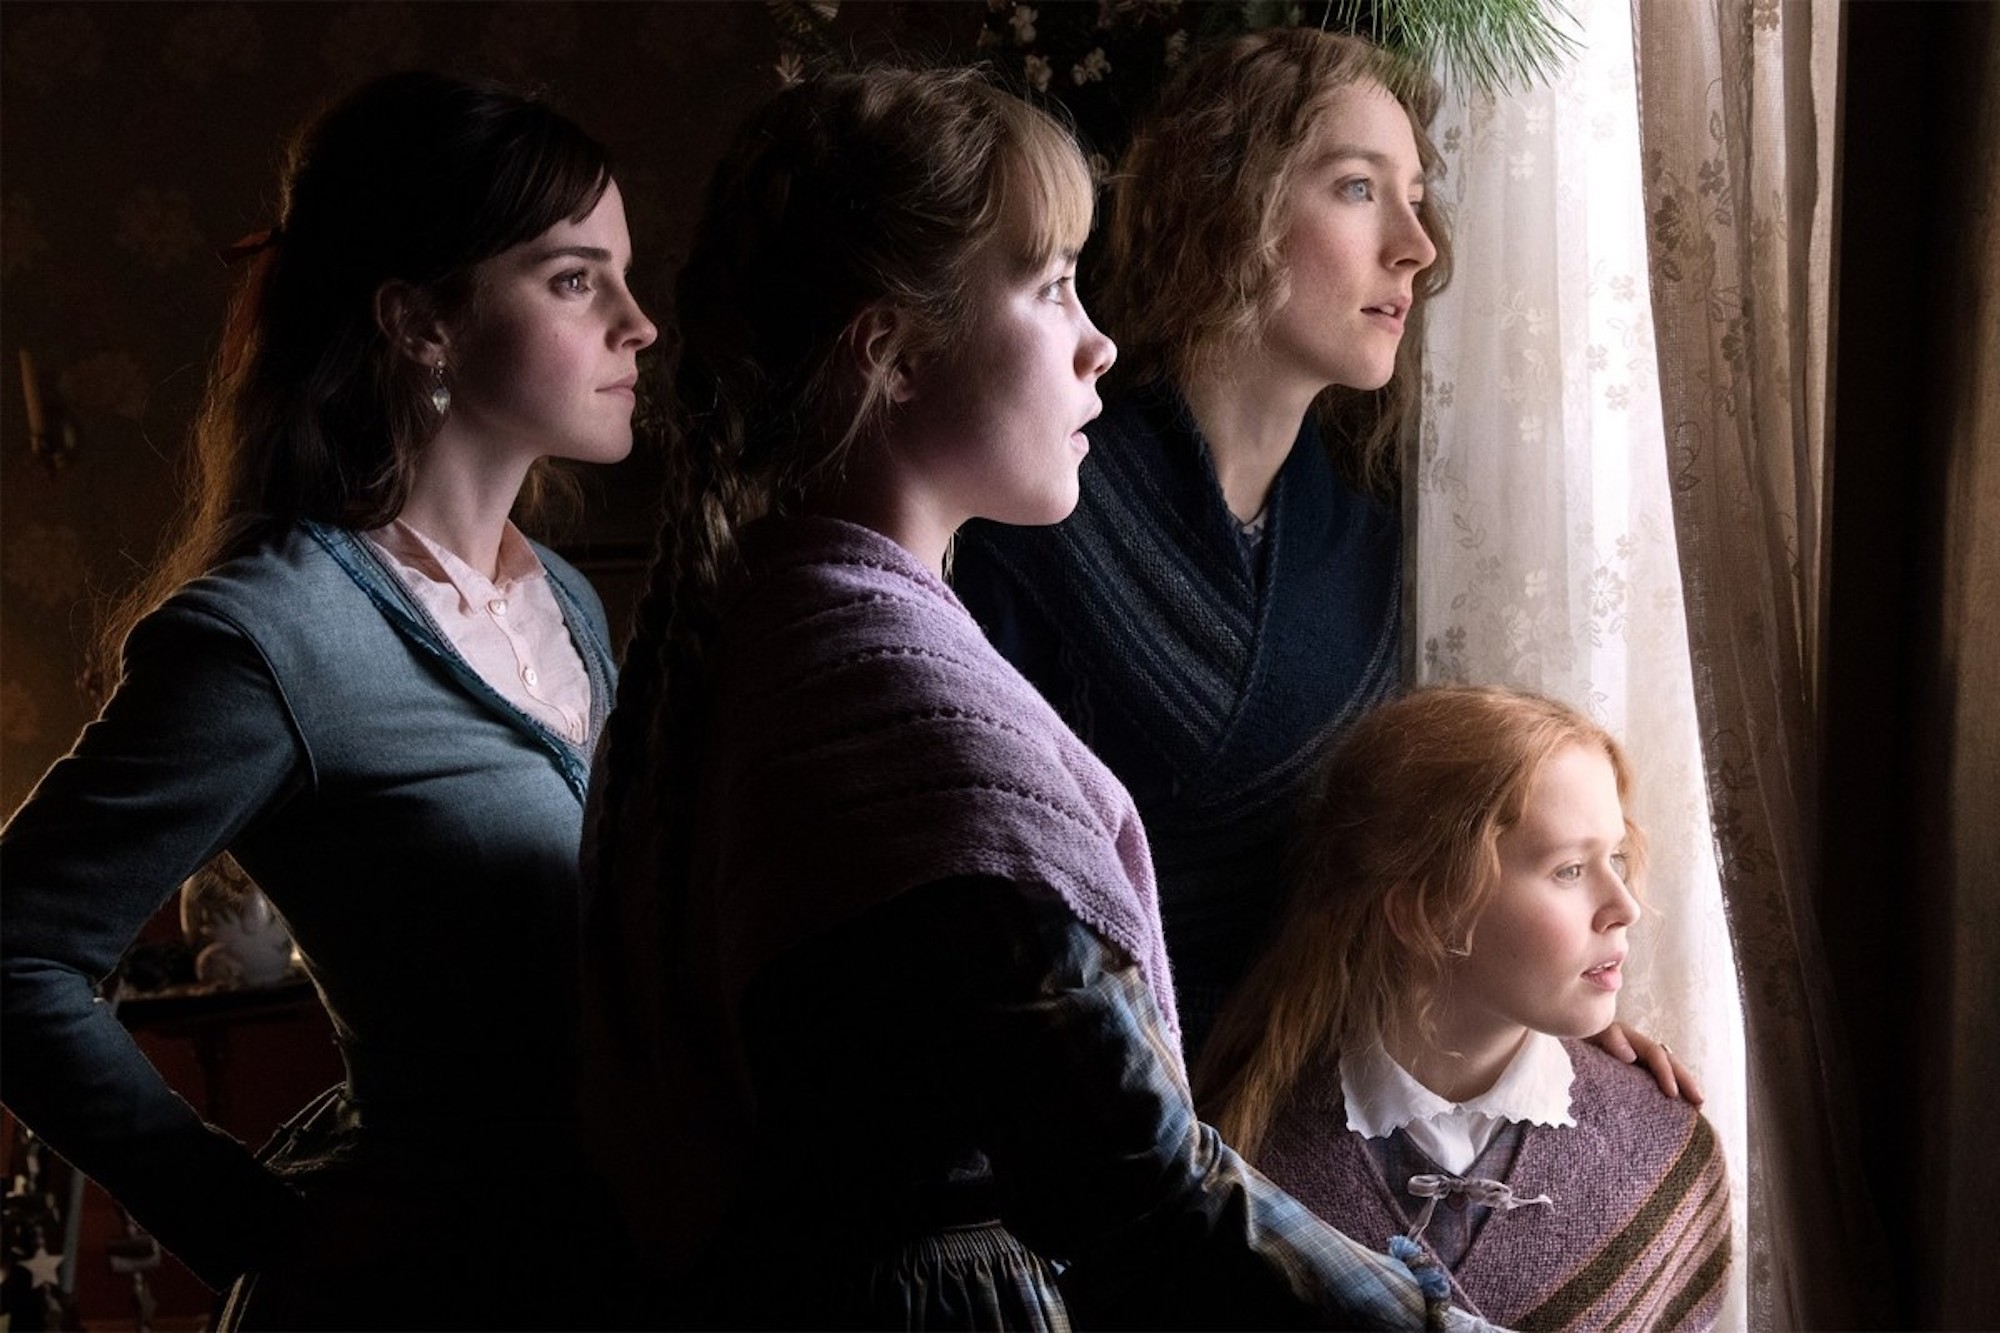 Greta Gerwig's Little Women group